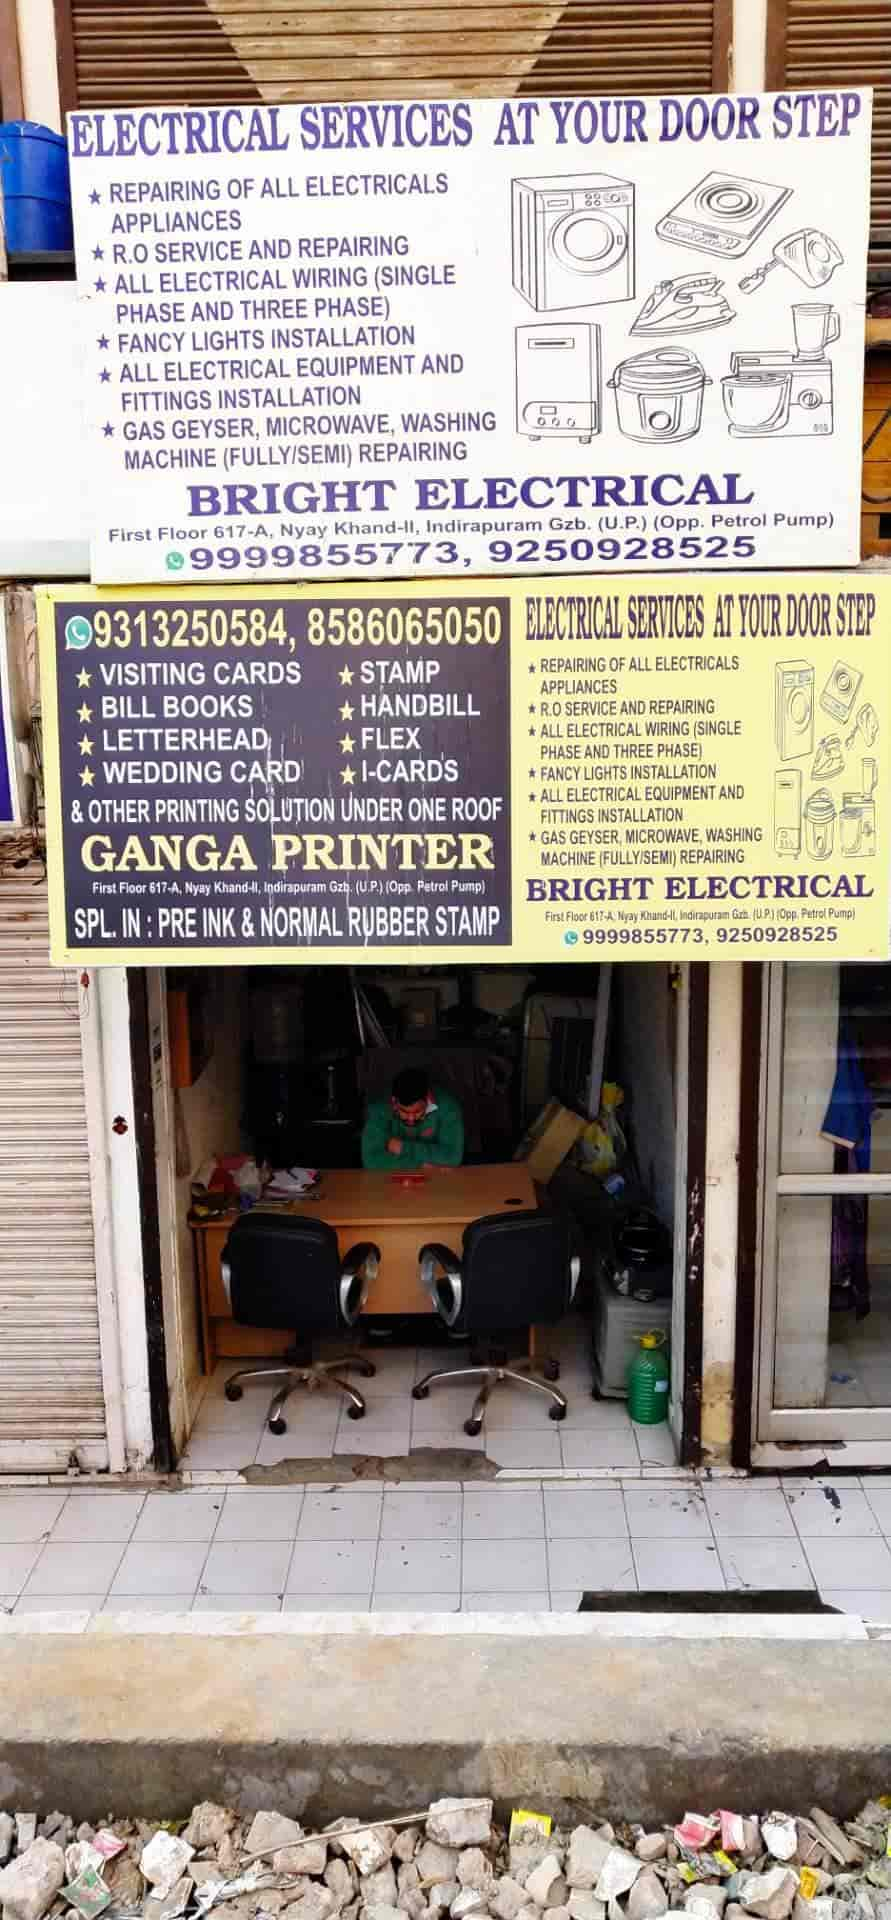 medium resolution of bright electrical nyay khand 2 indirapuram electrical contractors in ghaziabad delhi justdial